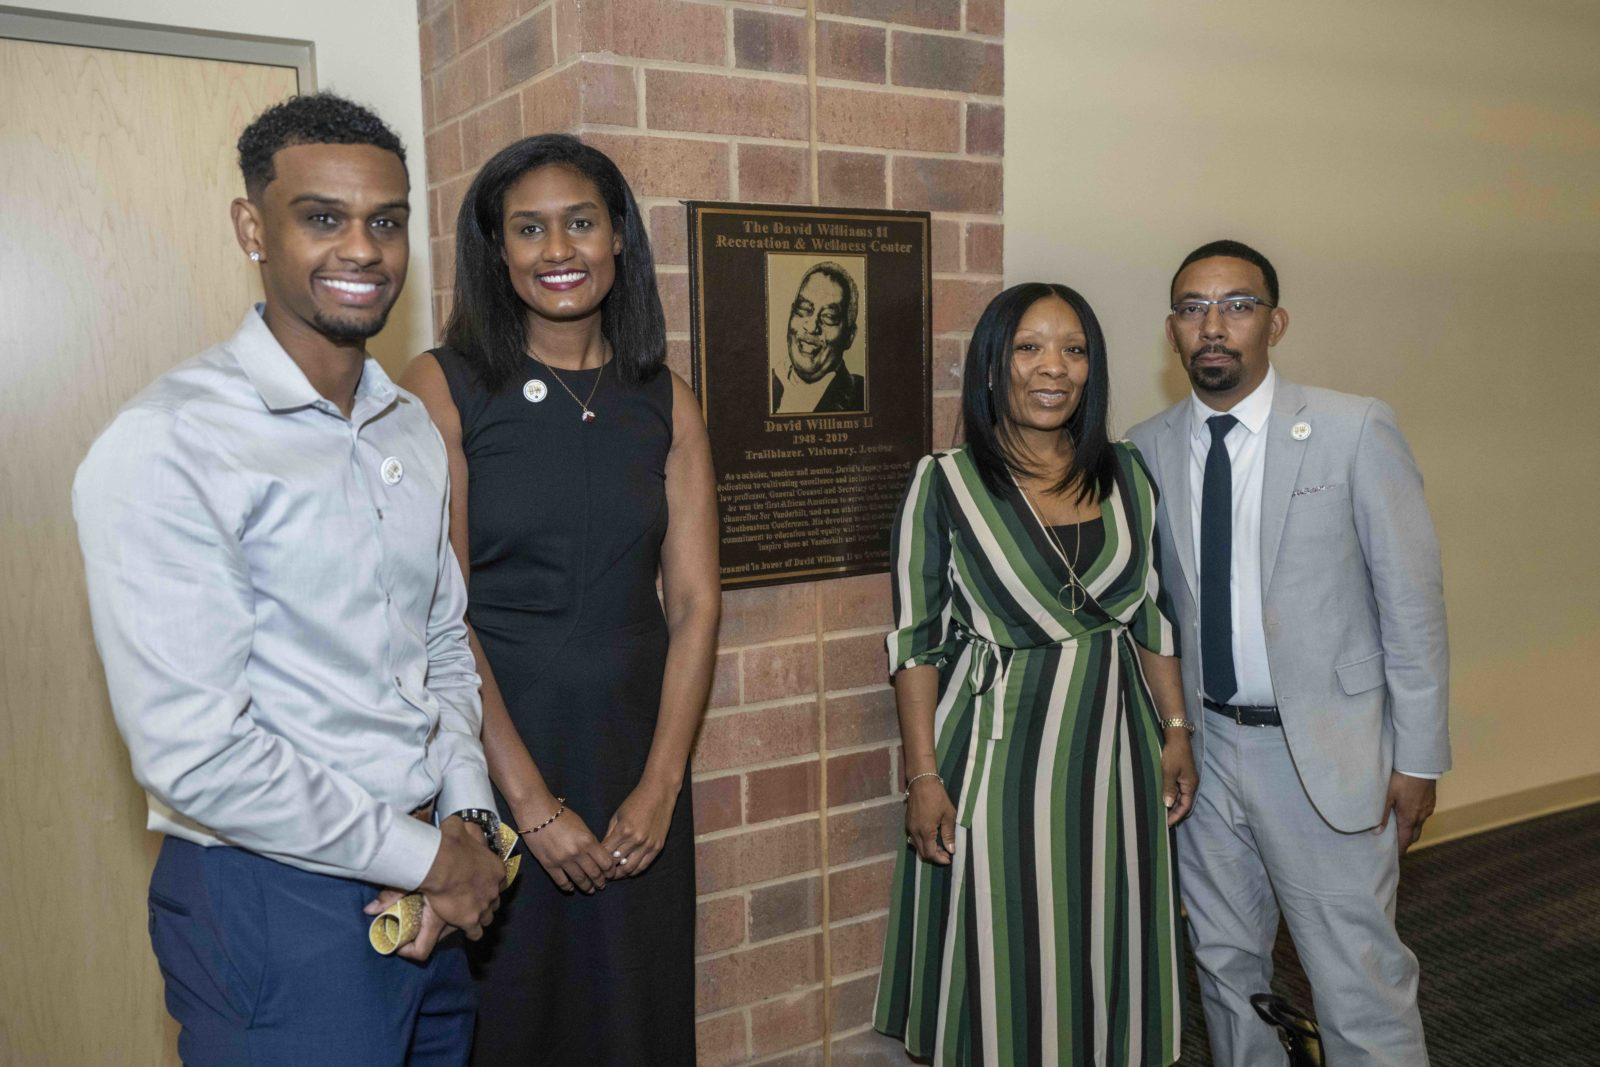 David Williams' children stand next to a new plaque honoring Vanderbilt's late former athletics director and vice chancellor. (John Russell/Vanderbilt University)